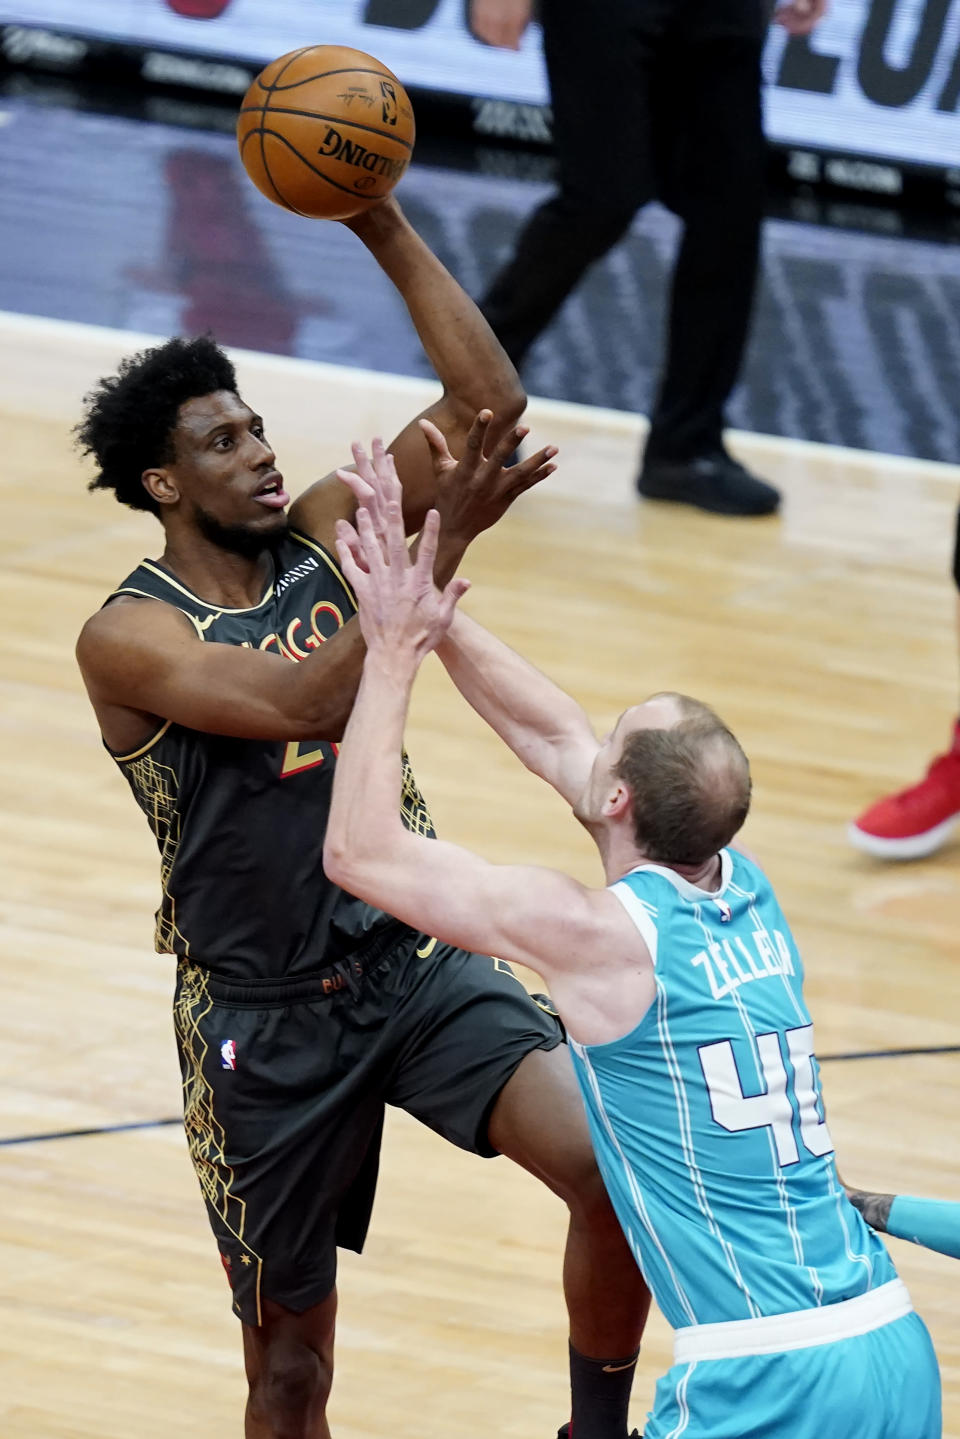 Chicago Bulls' Thaddeus Young, left, shoots over Charlotte Hornets' Cody Zeller during the first half of an NBA basketball game Thursday, April 22, 2021, in Chicago. (AP Photo/Charles Rex Arbogast)